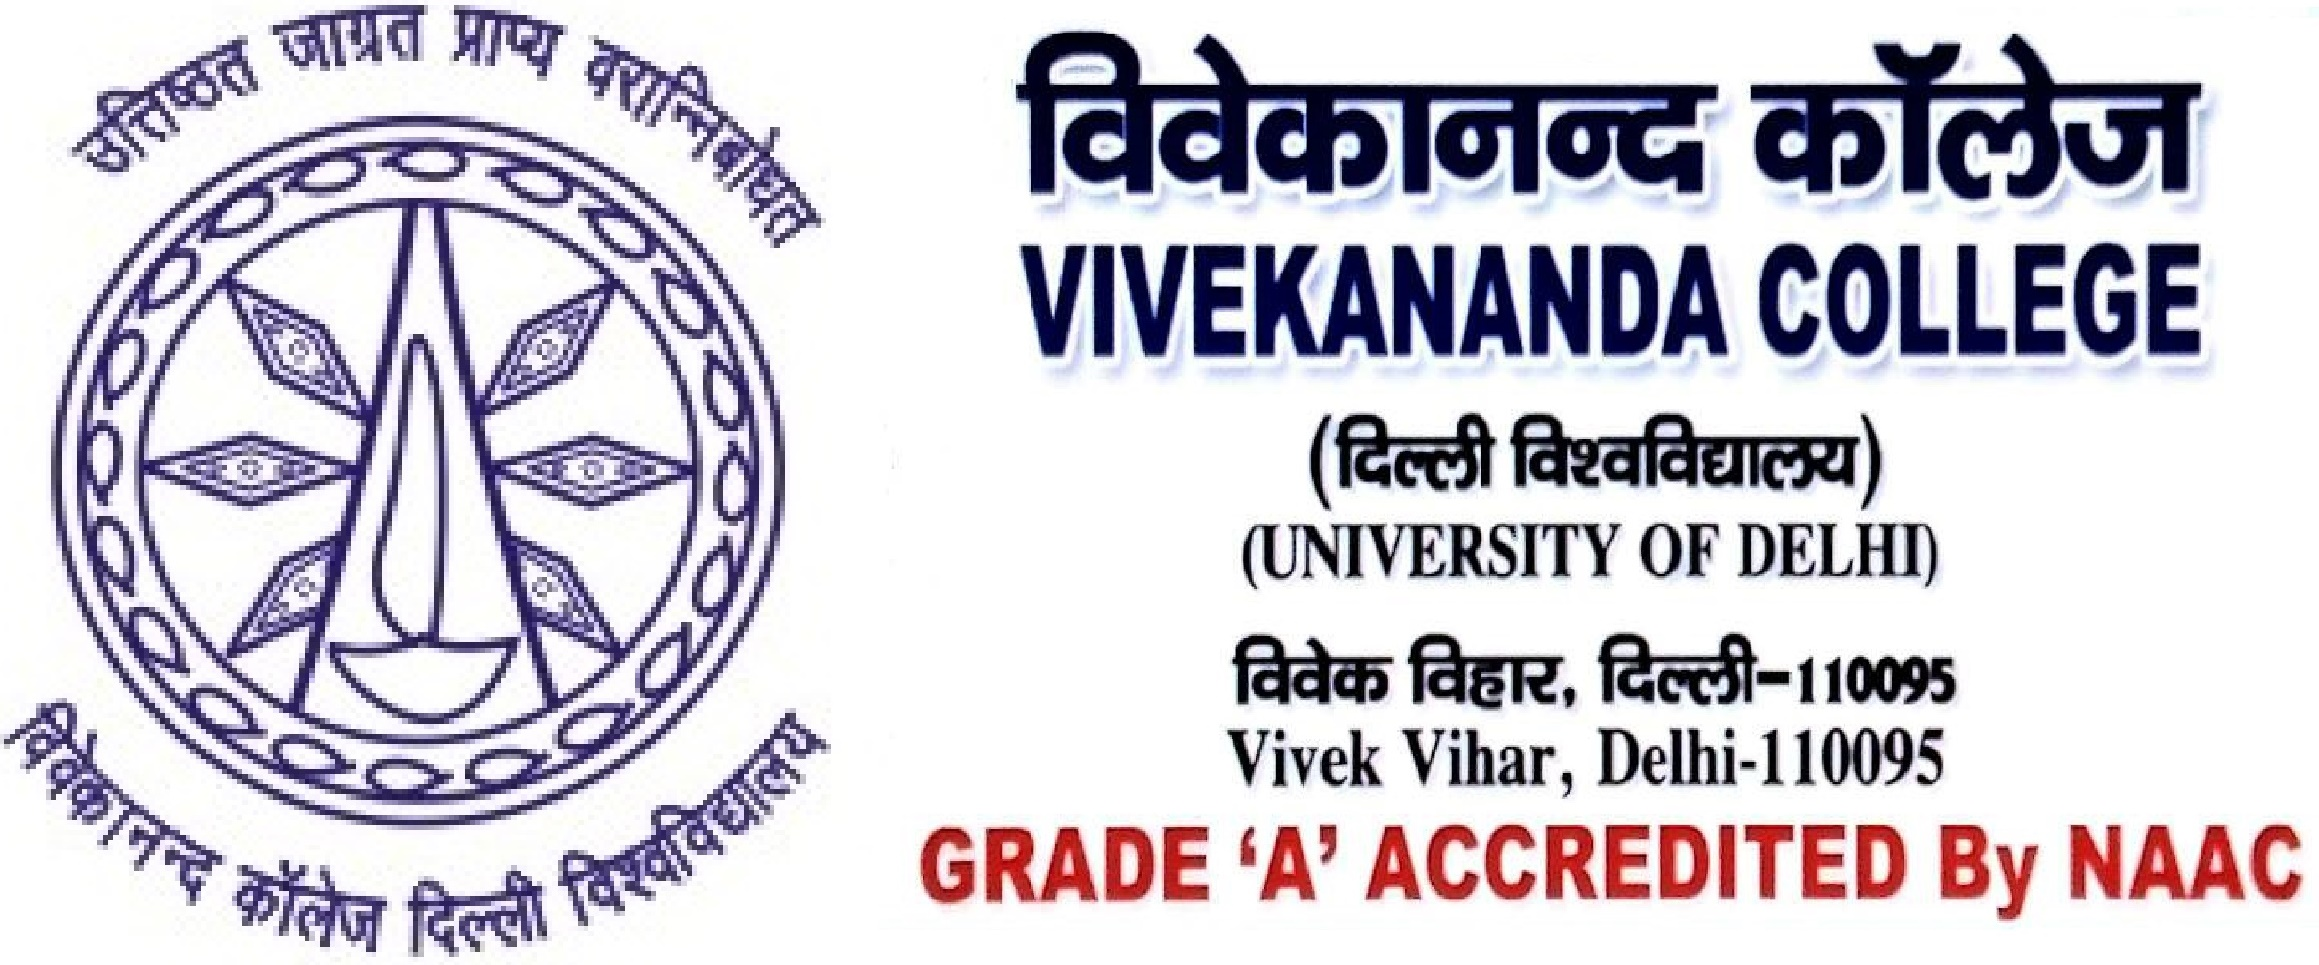 VC-Vivekanand College